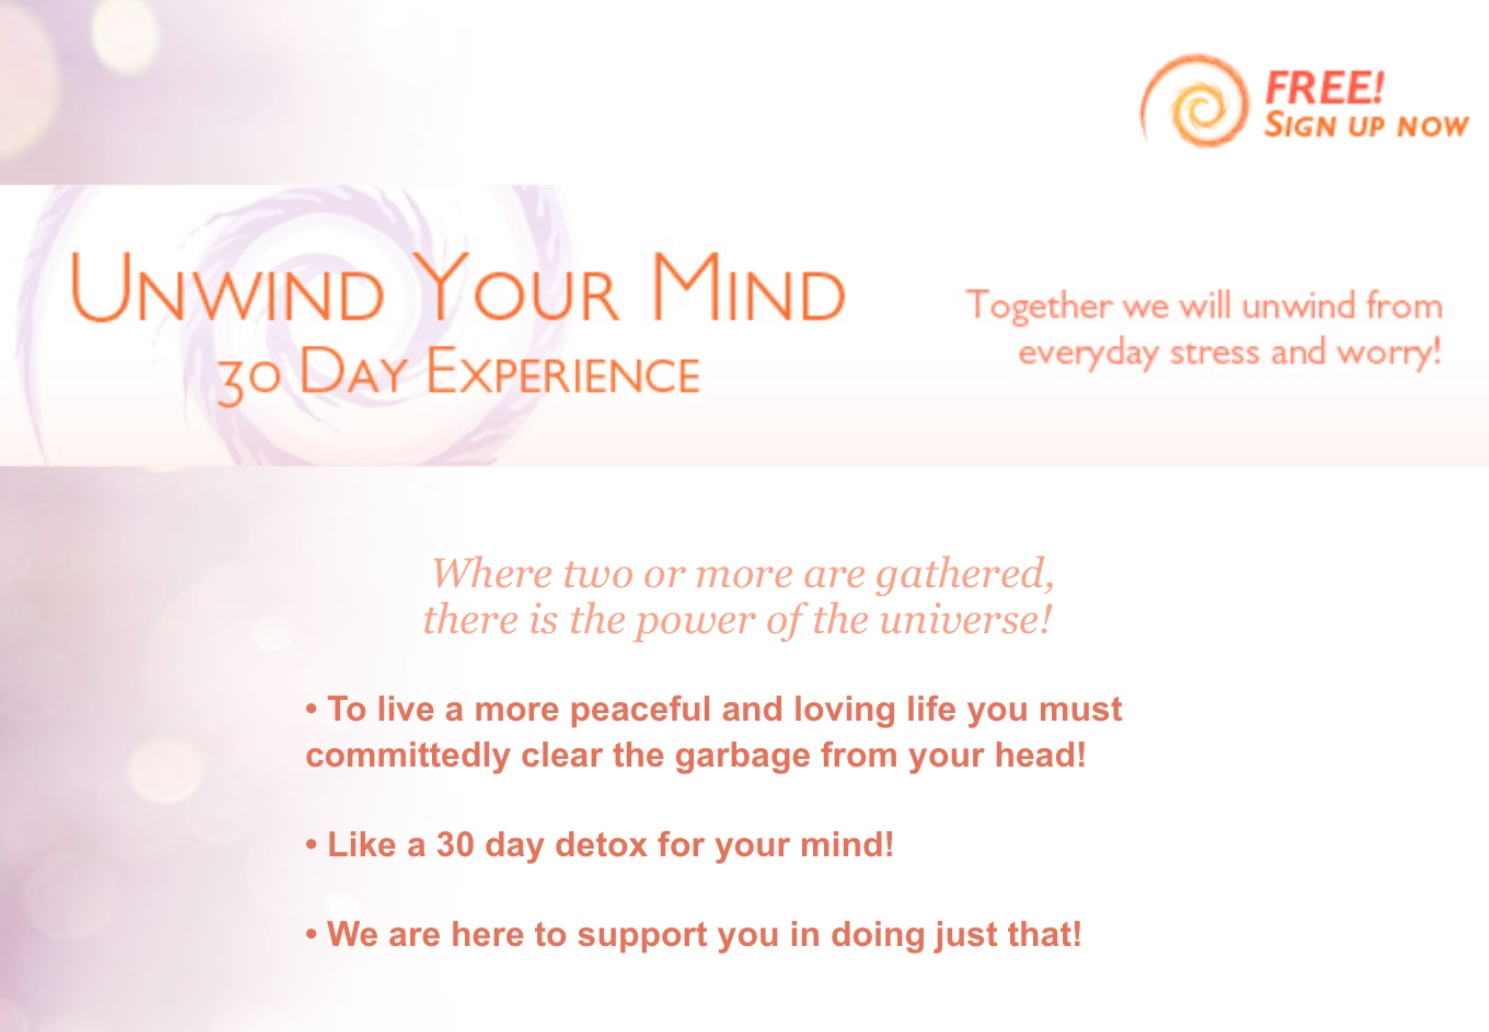 Unwind Your Mind 30 Day Experience